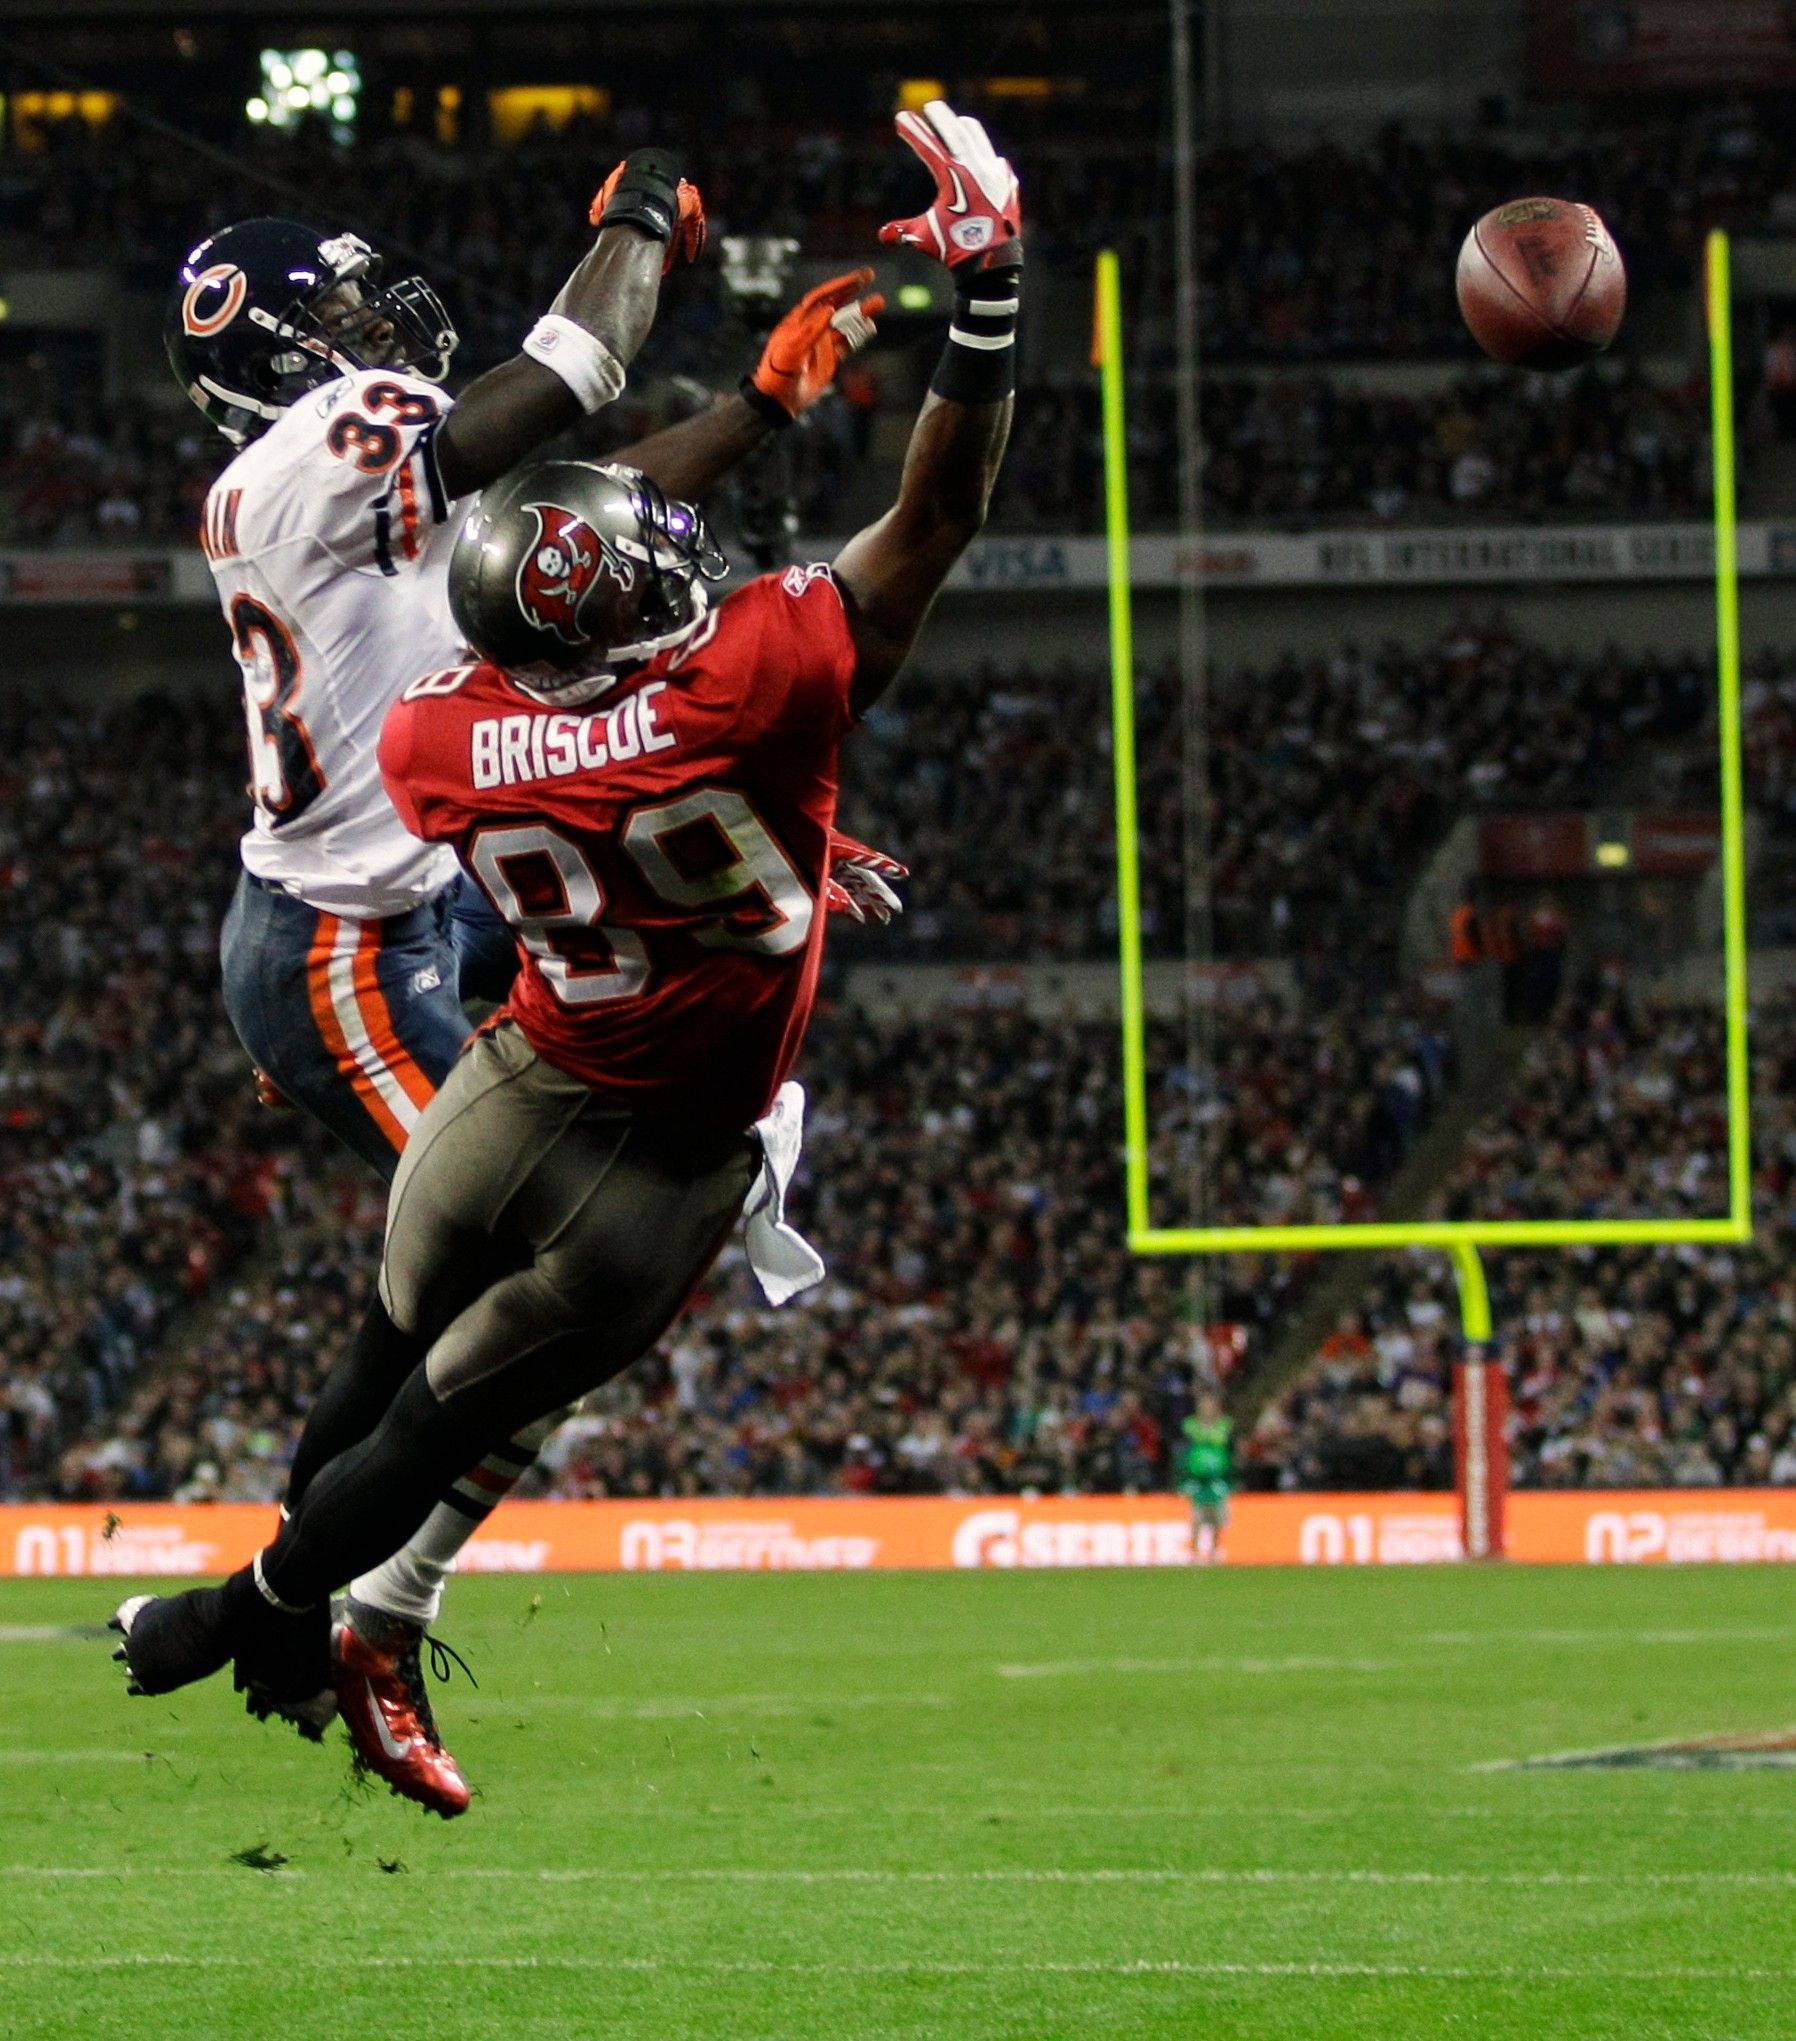 Chicago Bears cornerback Charles Tillman defends as Tampa Bay Buccaneers wide receiver Dezmon Briscoe cannot catch intended for him during the first half.